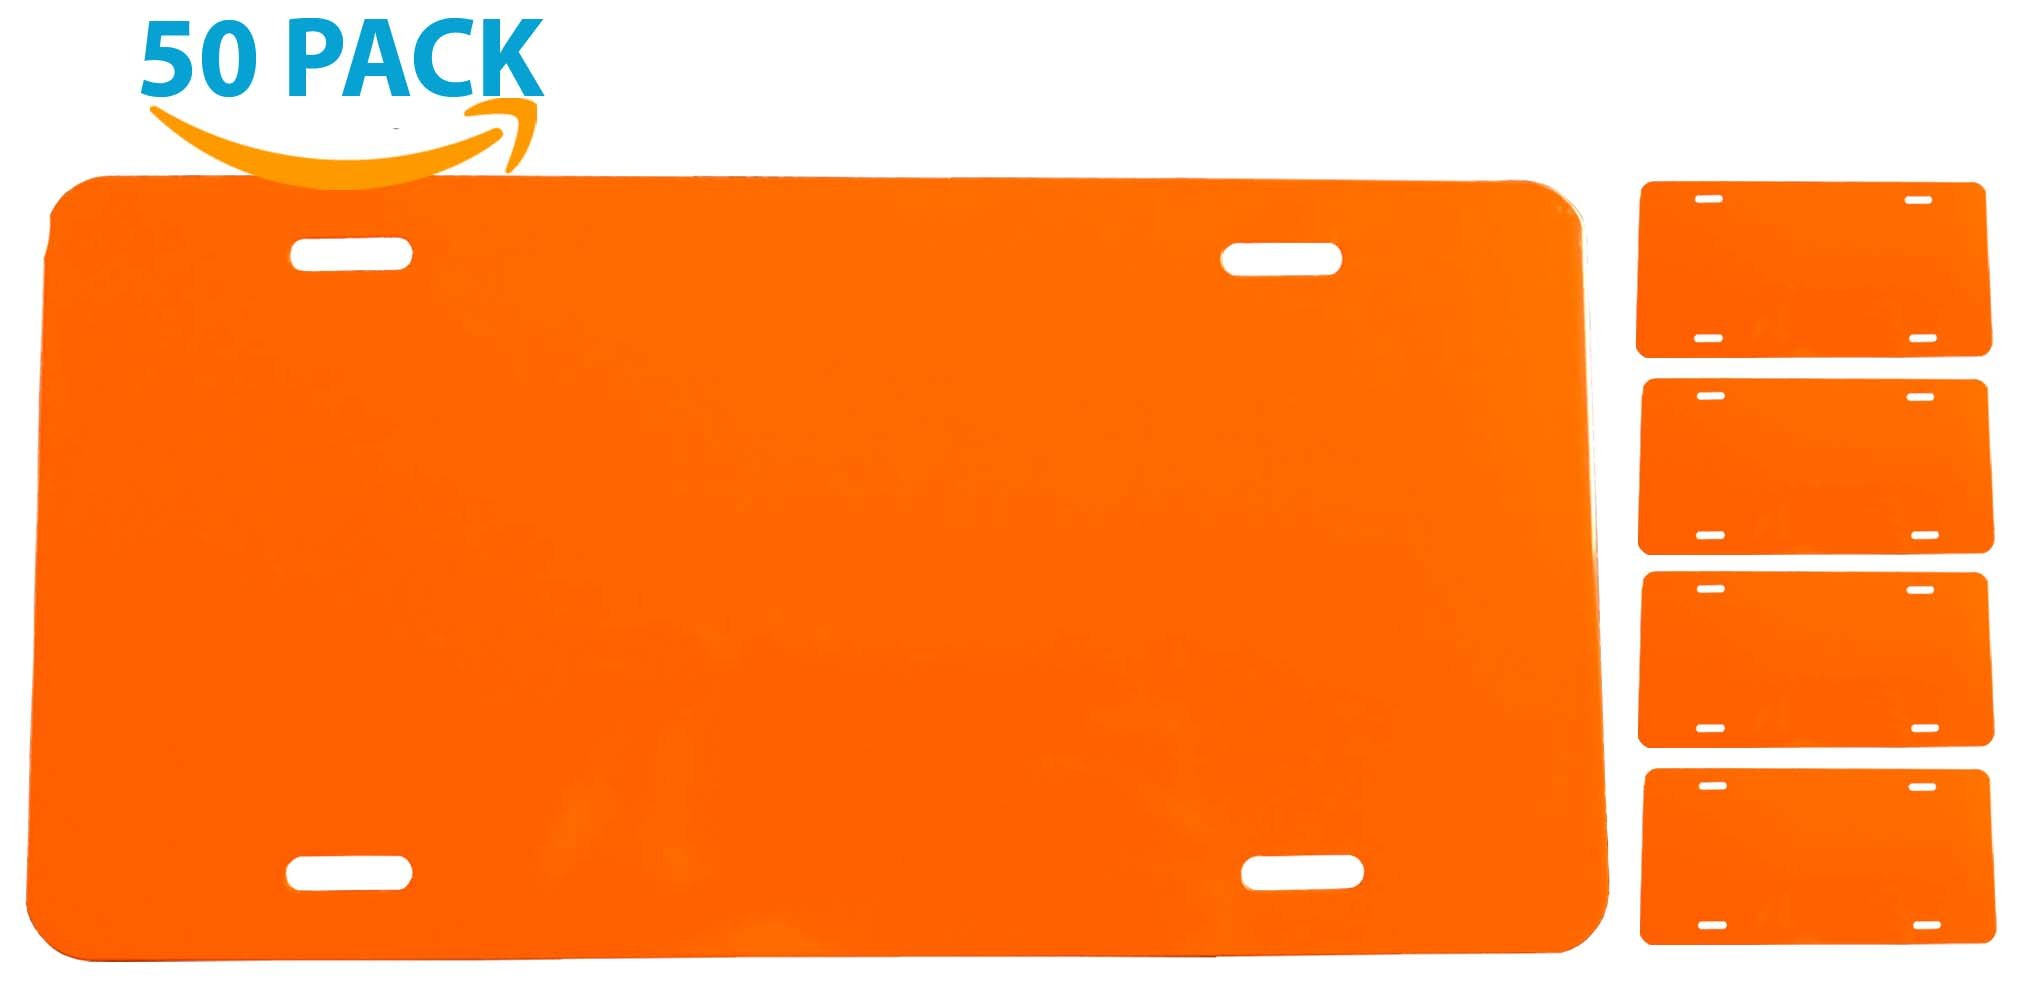 BRITE ORANGE - License Plate Blank - Aluminum - 0.040 Thickness/1mm - Standard US/Canada Size 12x6 (50-PACK)